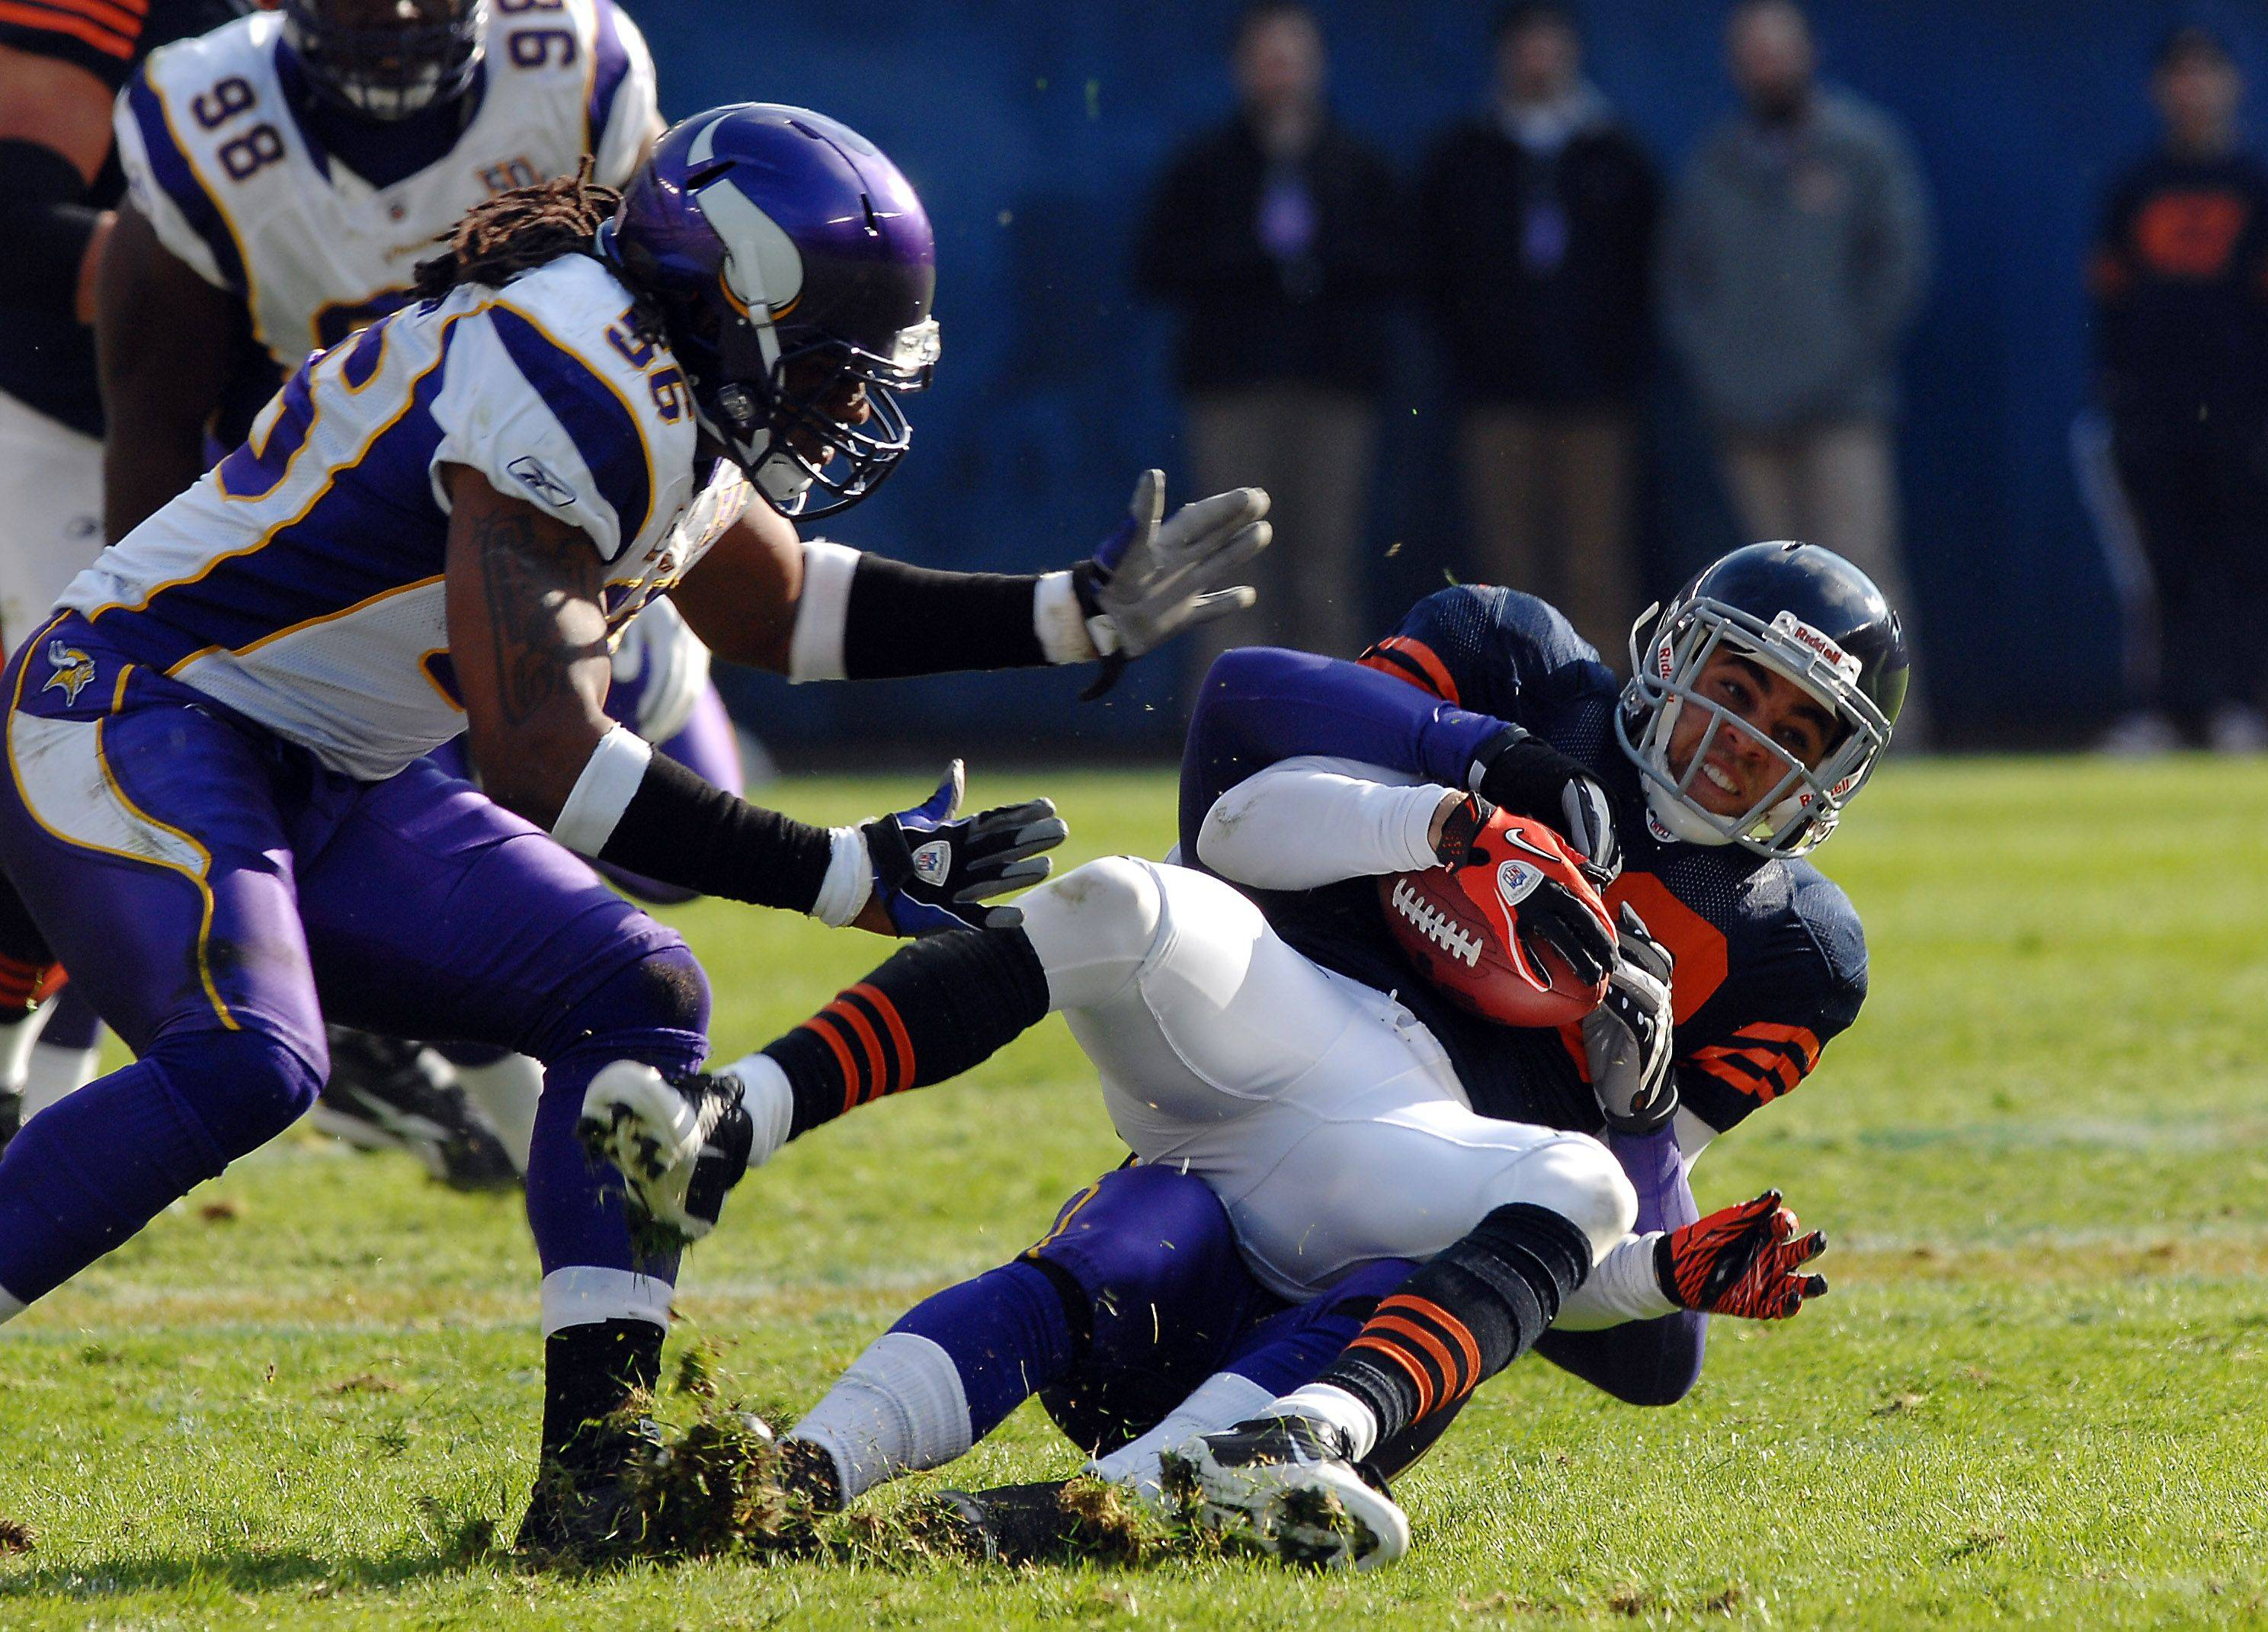 Chicago Bears Johnny Knox gets wrapped up by Minnesota's defense on a pass play in the second quarter.